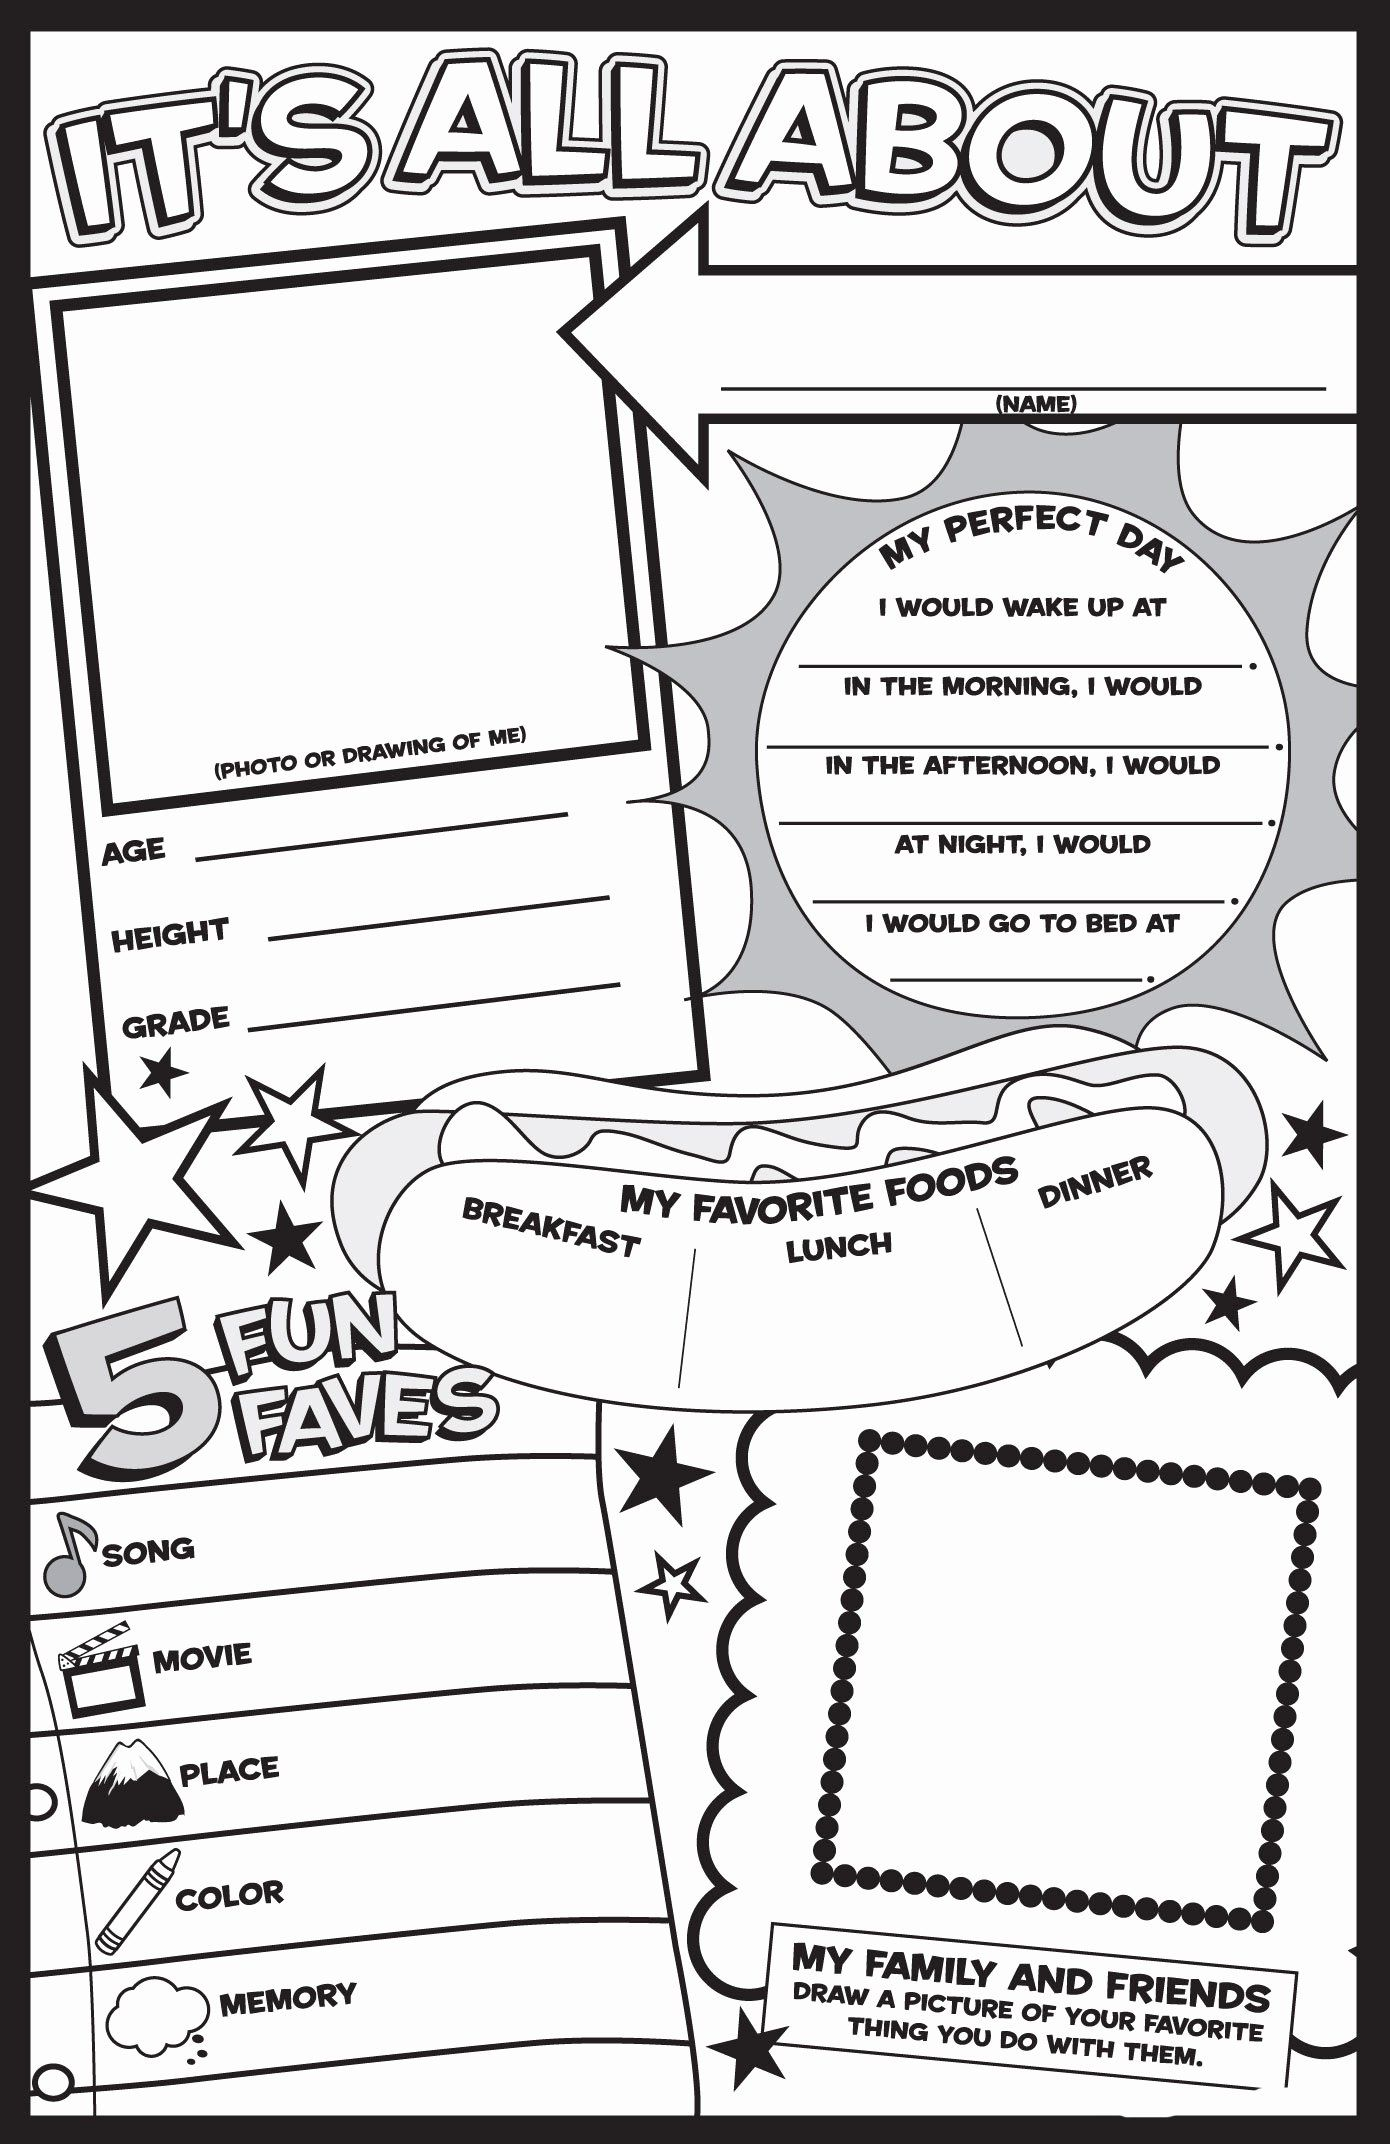 Pin By Tiffany Feil On Kids Planners About Me Poster First Day Of School Activities All About Me Worksheet